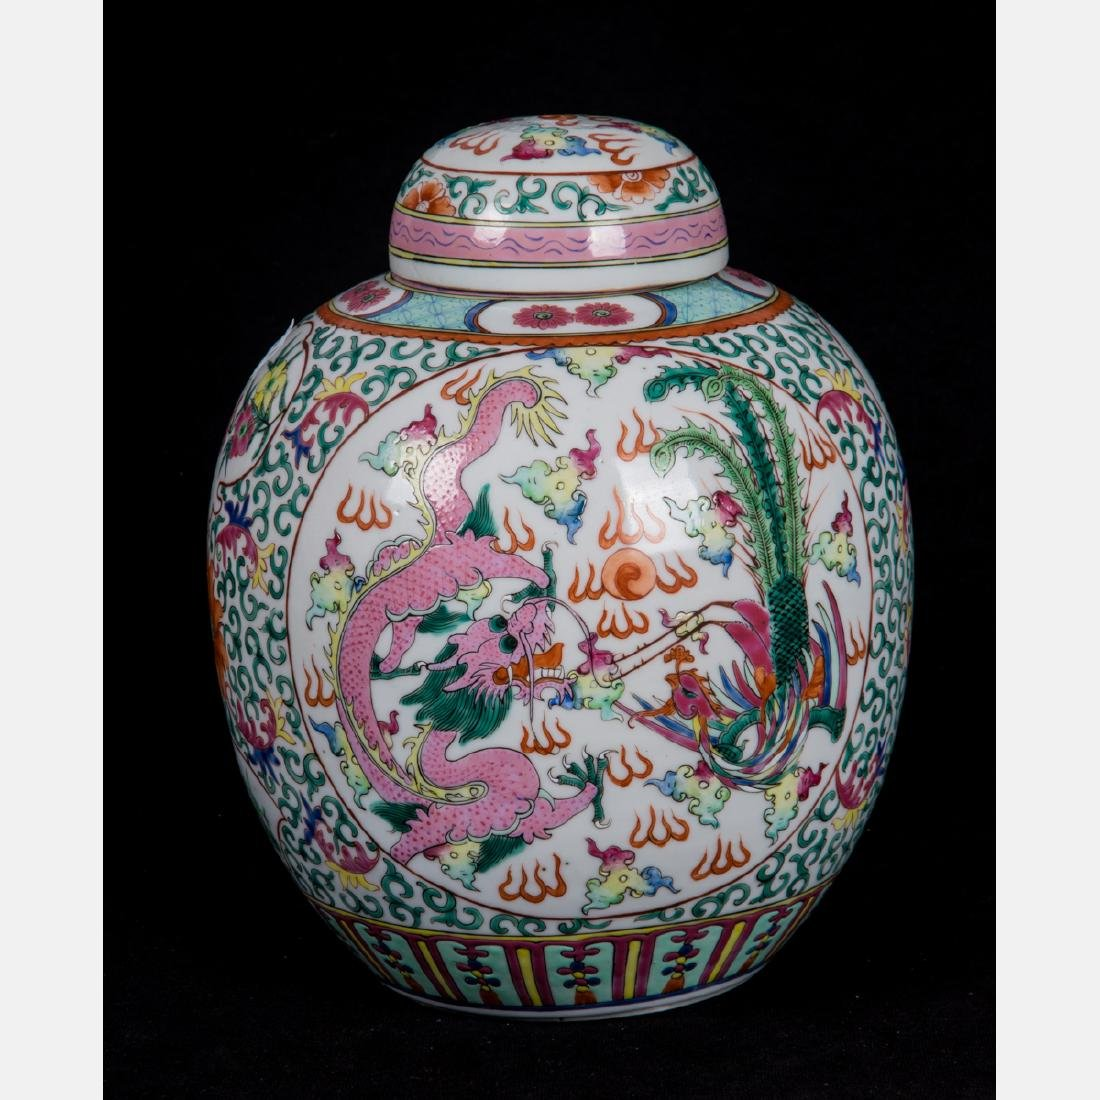 A Chinese Famille Rose Porcelain Lidded Jar, 20th